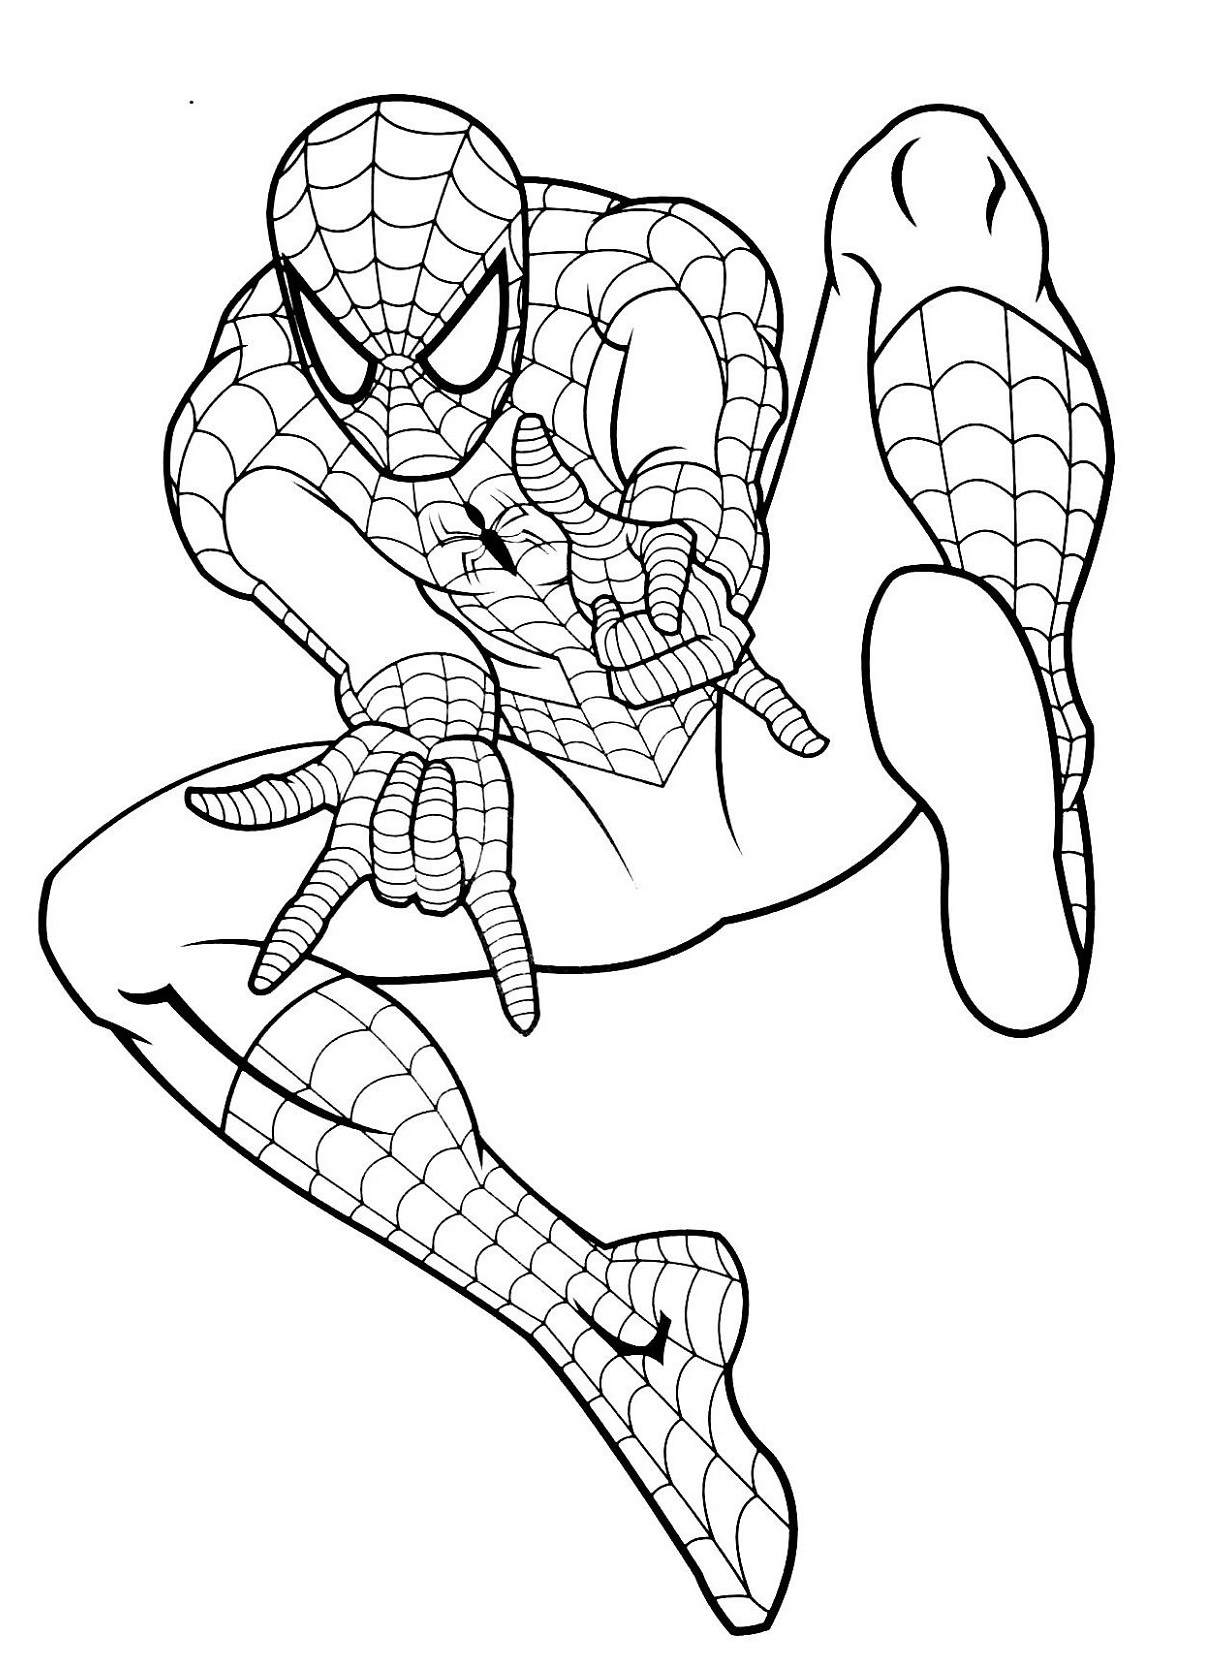 spiderman picture to color coloring pages spiderman free printable coloring pages spiderman color to picture